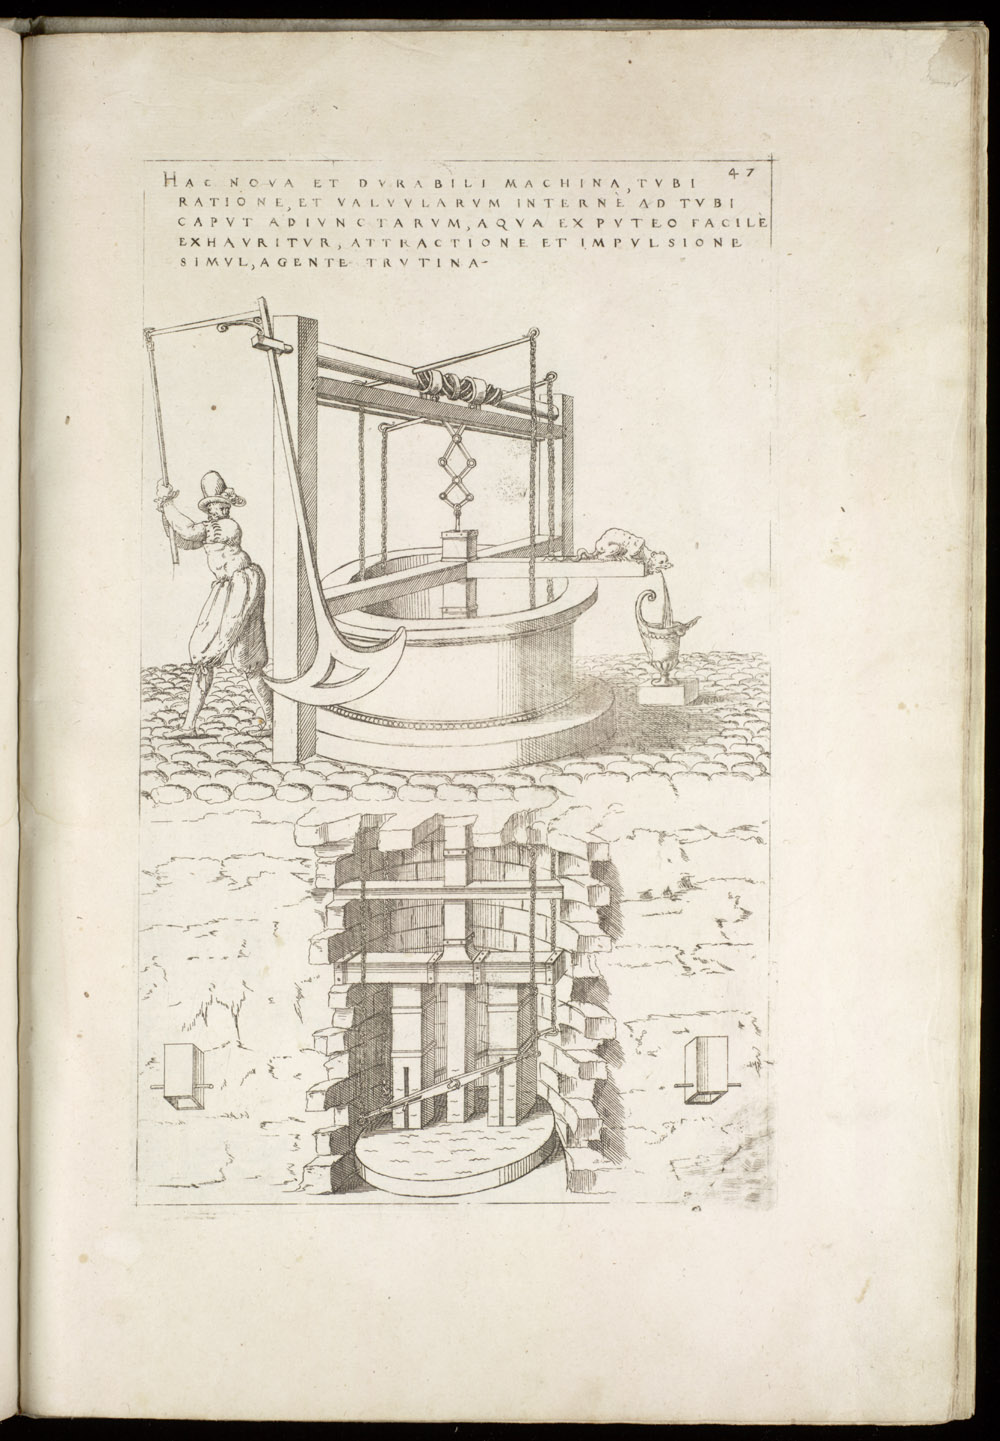 Plate 47 [Hand-powered well pump],  Image number:SIL4-2-127a